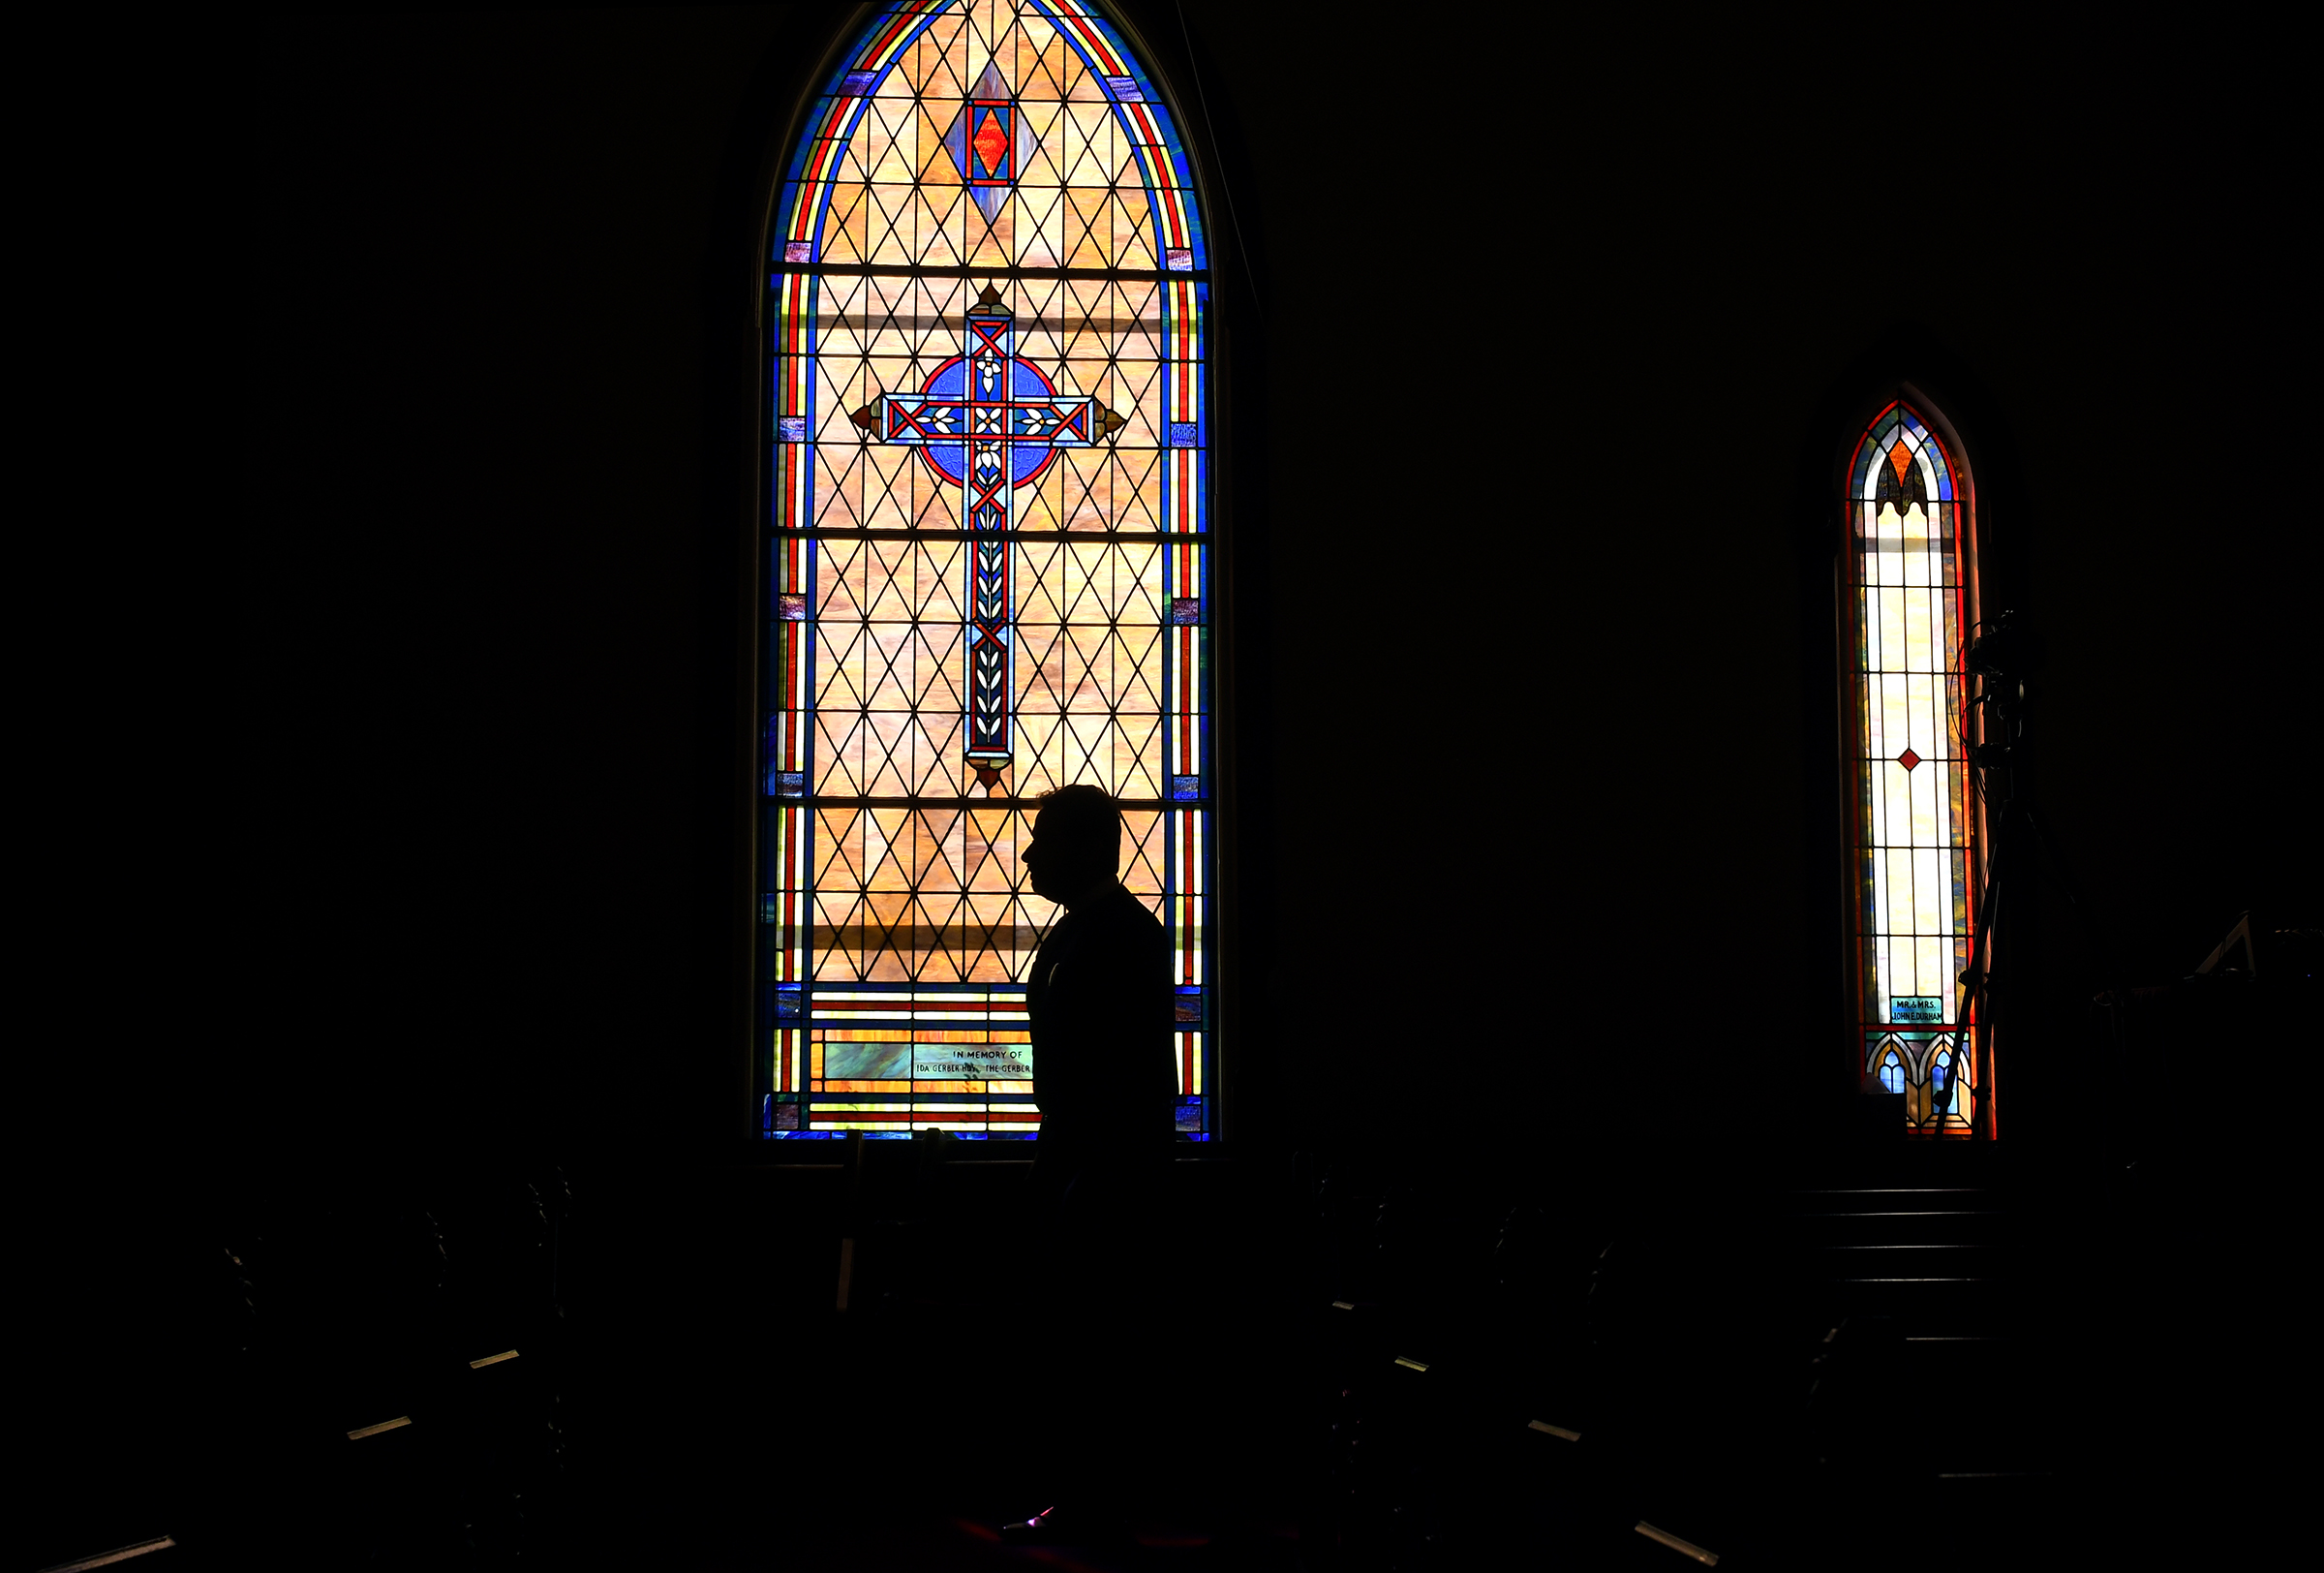 The Rev. Salvatore Sapienza is silhouetted by the stained glass inside the Douglas Congregational United Church of Christ in the village of Douglas, Mich., on Tuesday Oct. 13, 2020.